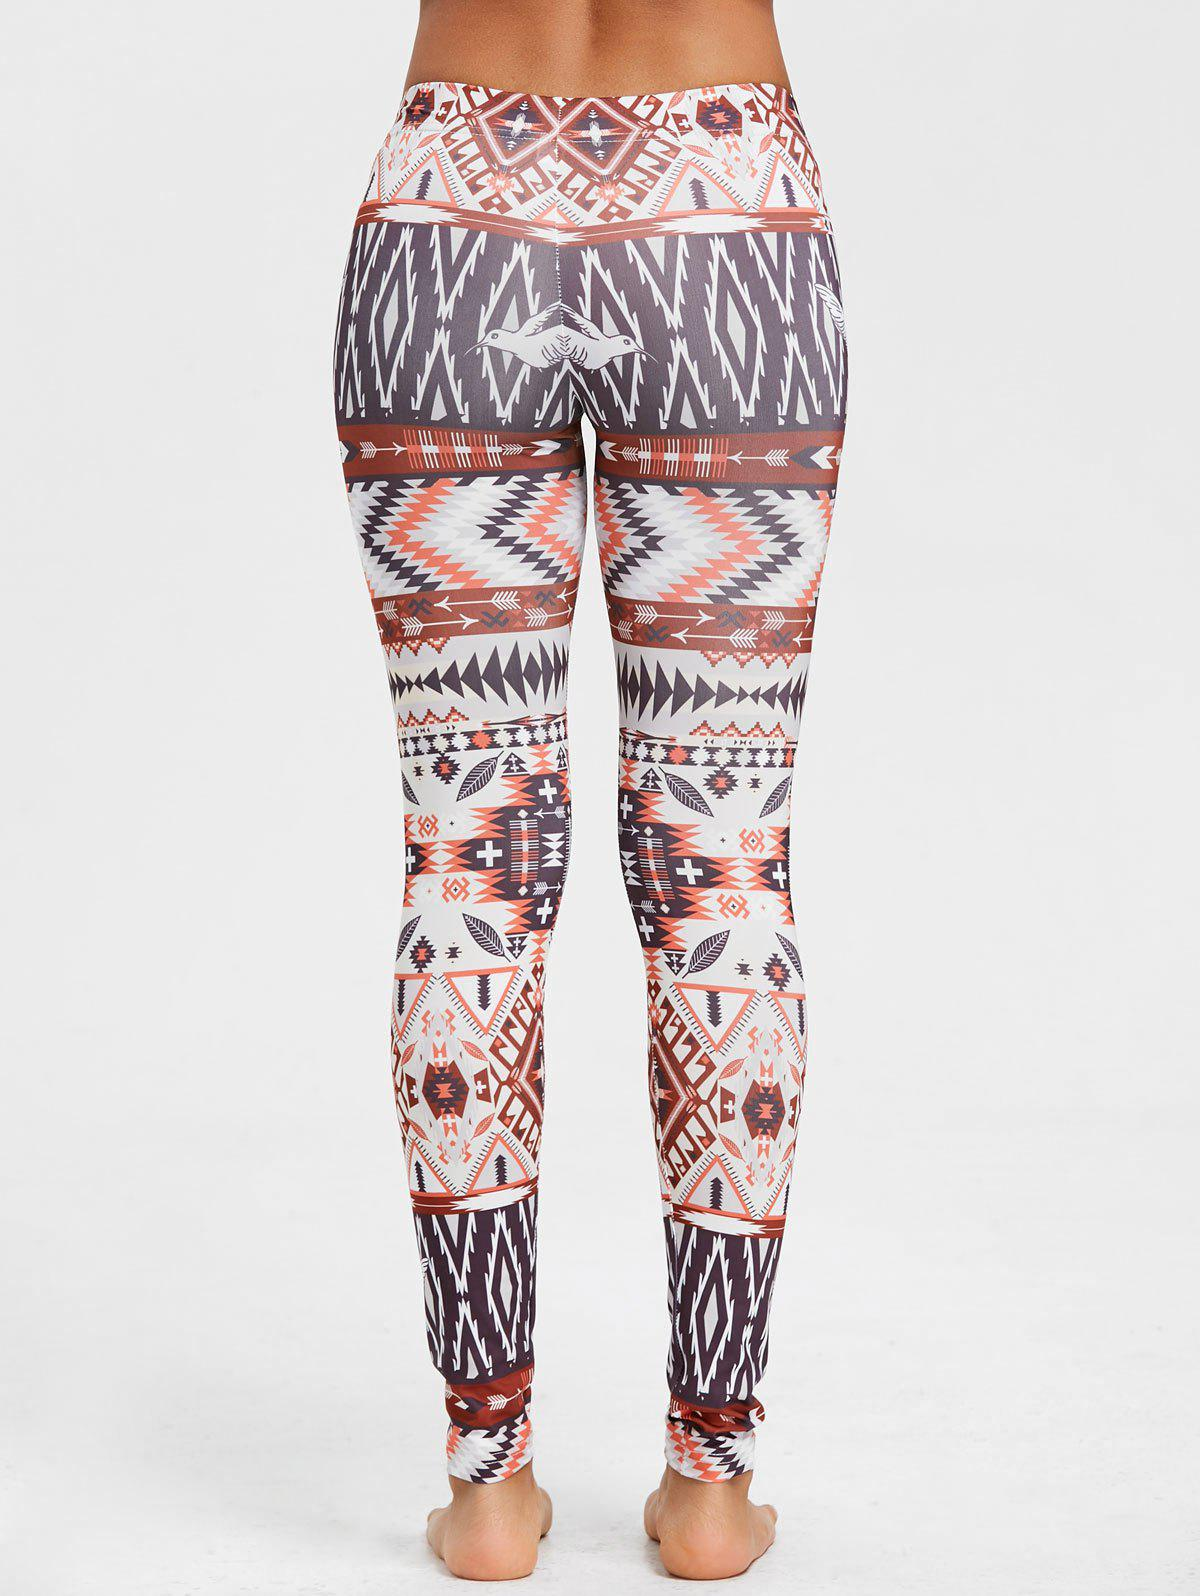 Geometric Print Behemian Leggings - COLORMIX XL